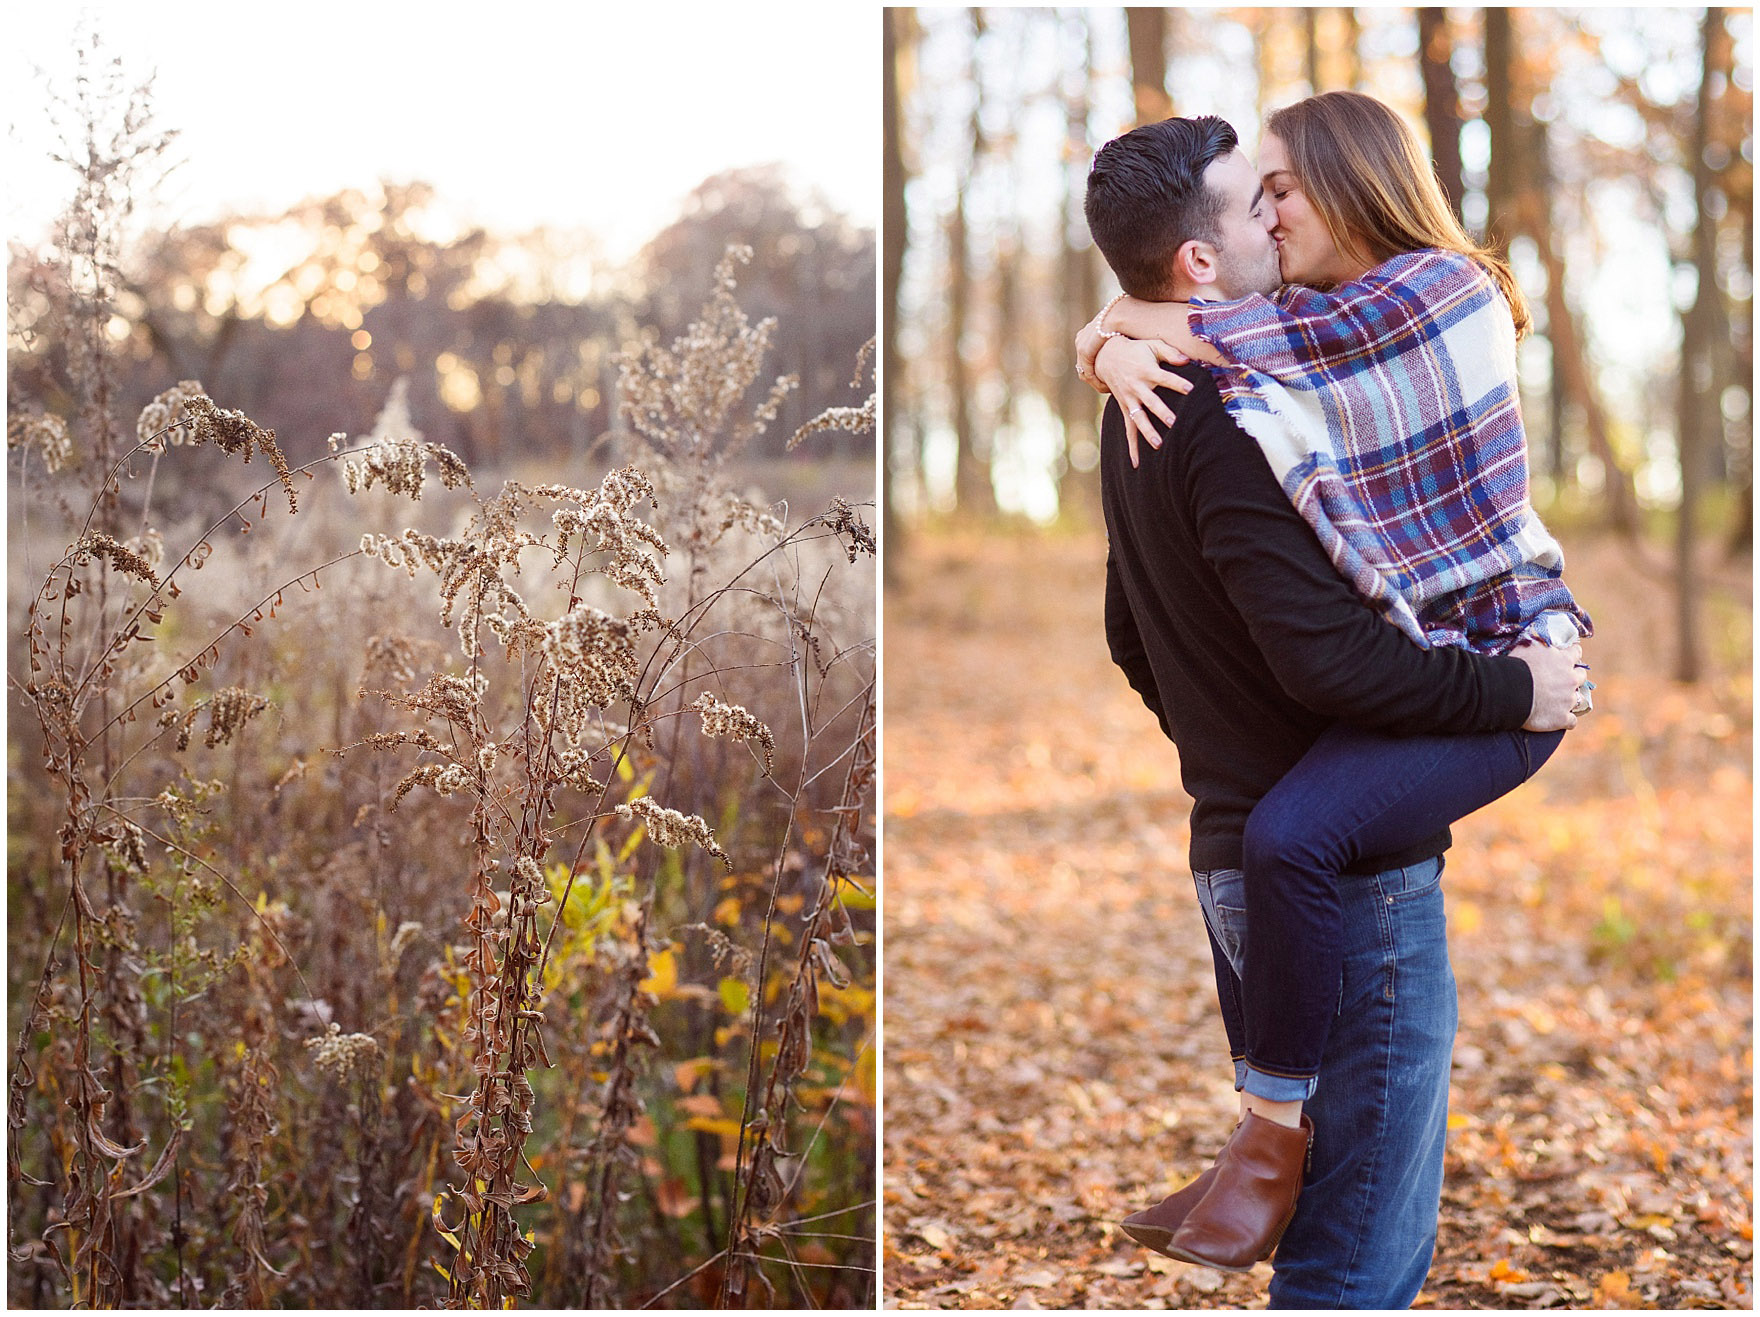 A couple kisses during a fall woods engagement session.